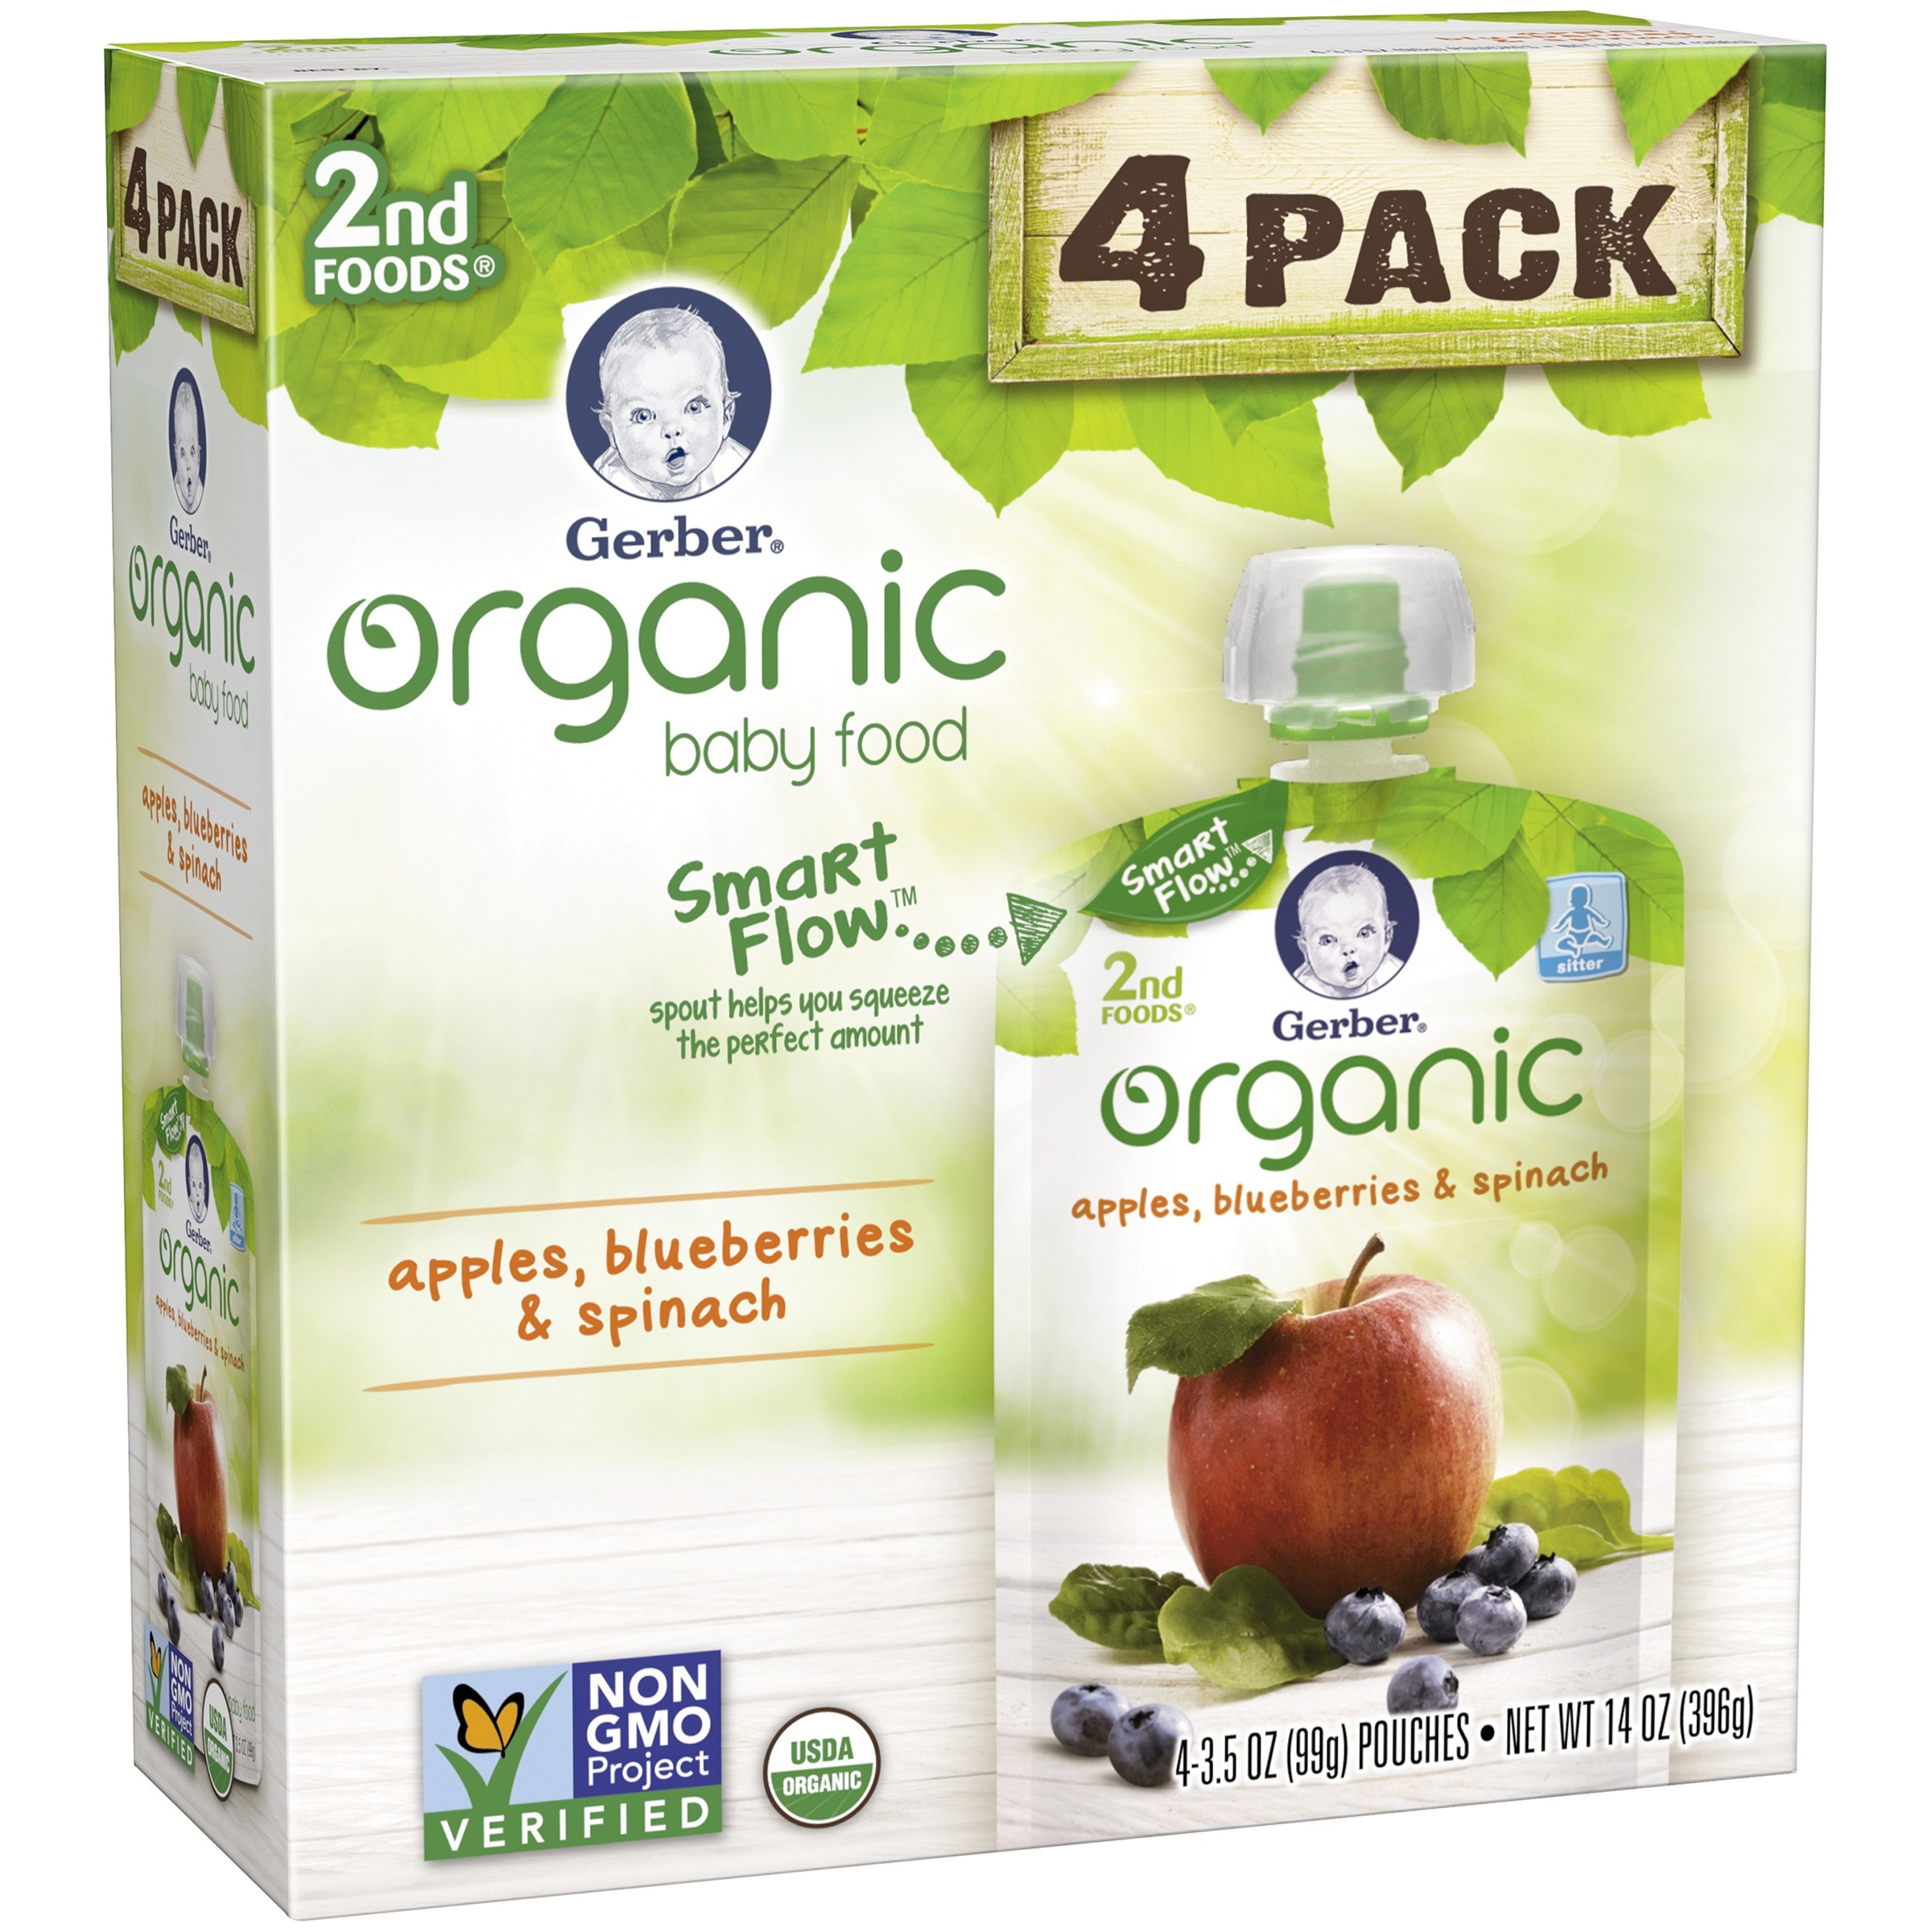 <mark>Gerber</mark> Organic 2nd <mark><mark>Food</mark>s</mark> <mark>Baby</mark> <mark>Food</mark>, Apples, Blueberries & Spinach, 3.5 oz Pouch (Pack of 4)